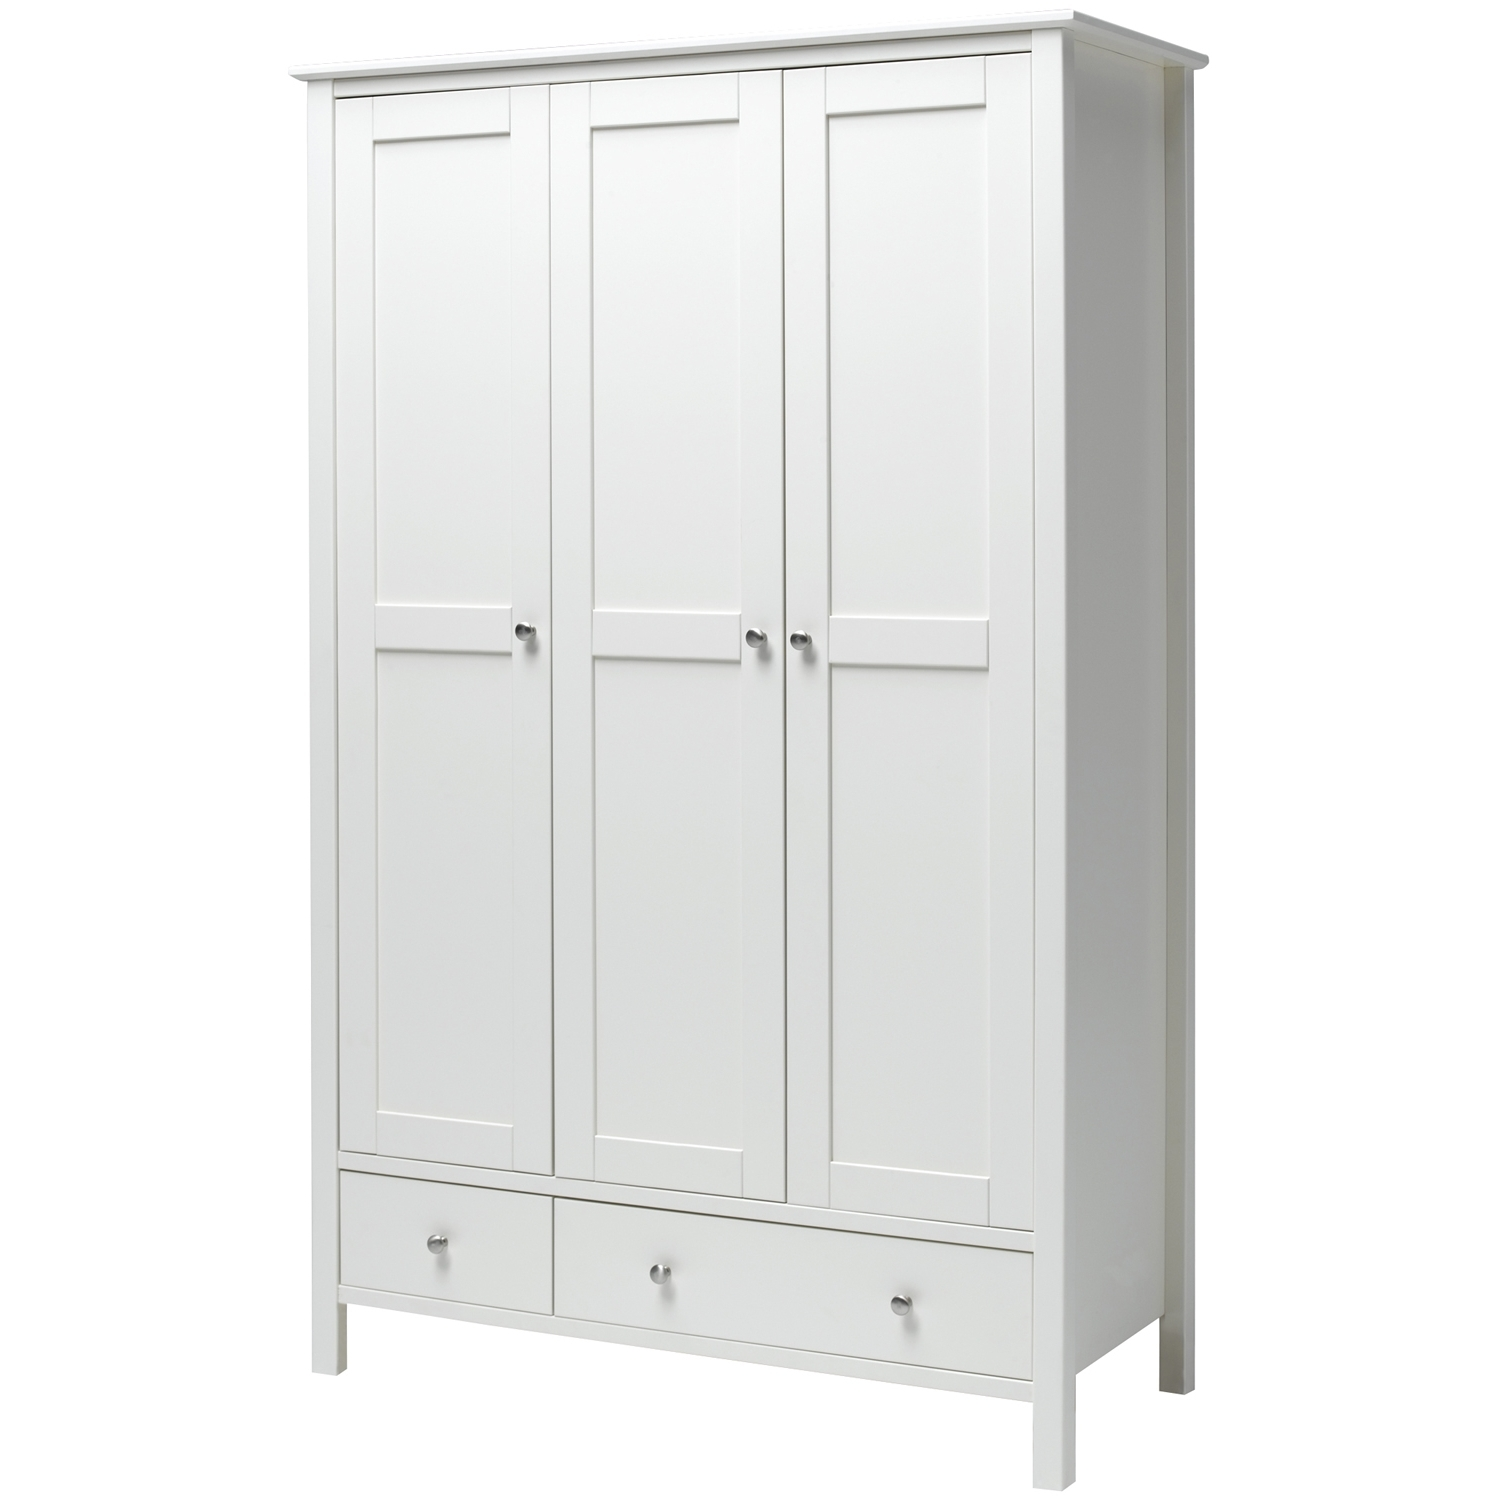 White 2 Door Wardrobes With Drawers Intended For Most Recent Stockholm 2 Door 1 Drawer Wardrobe White – Simply Furniture (View 13 of 15)